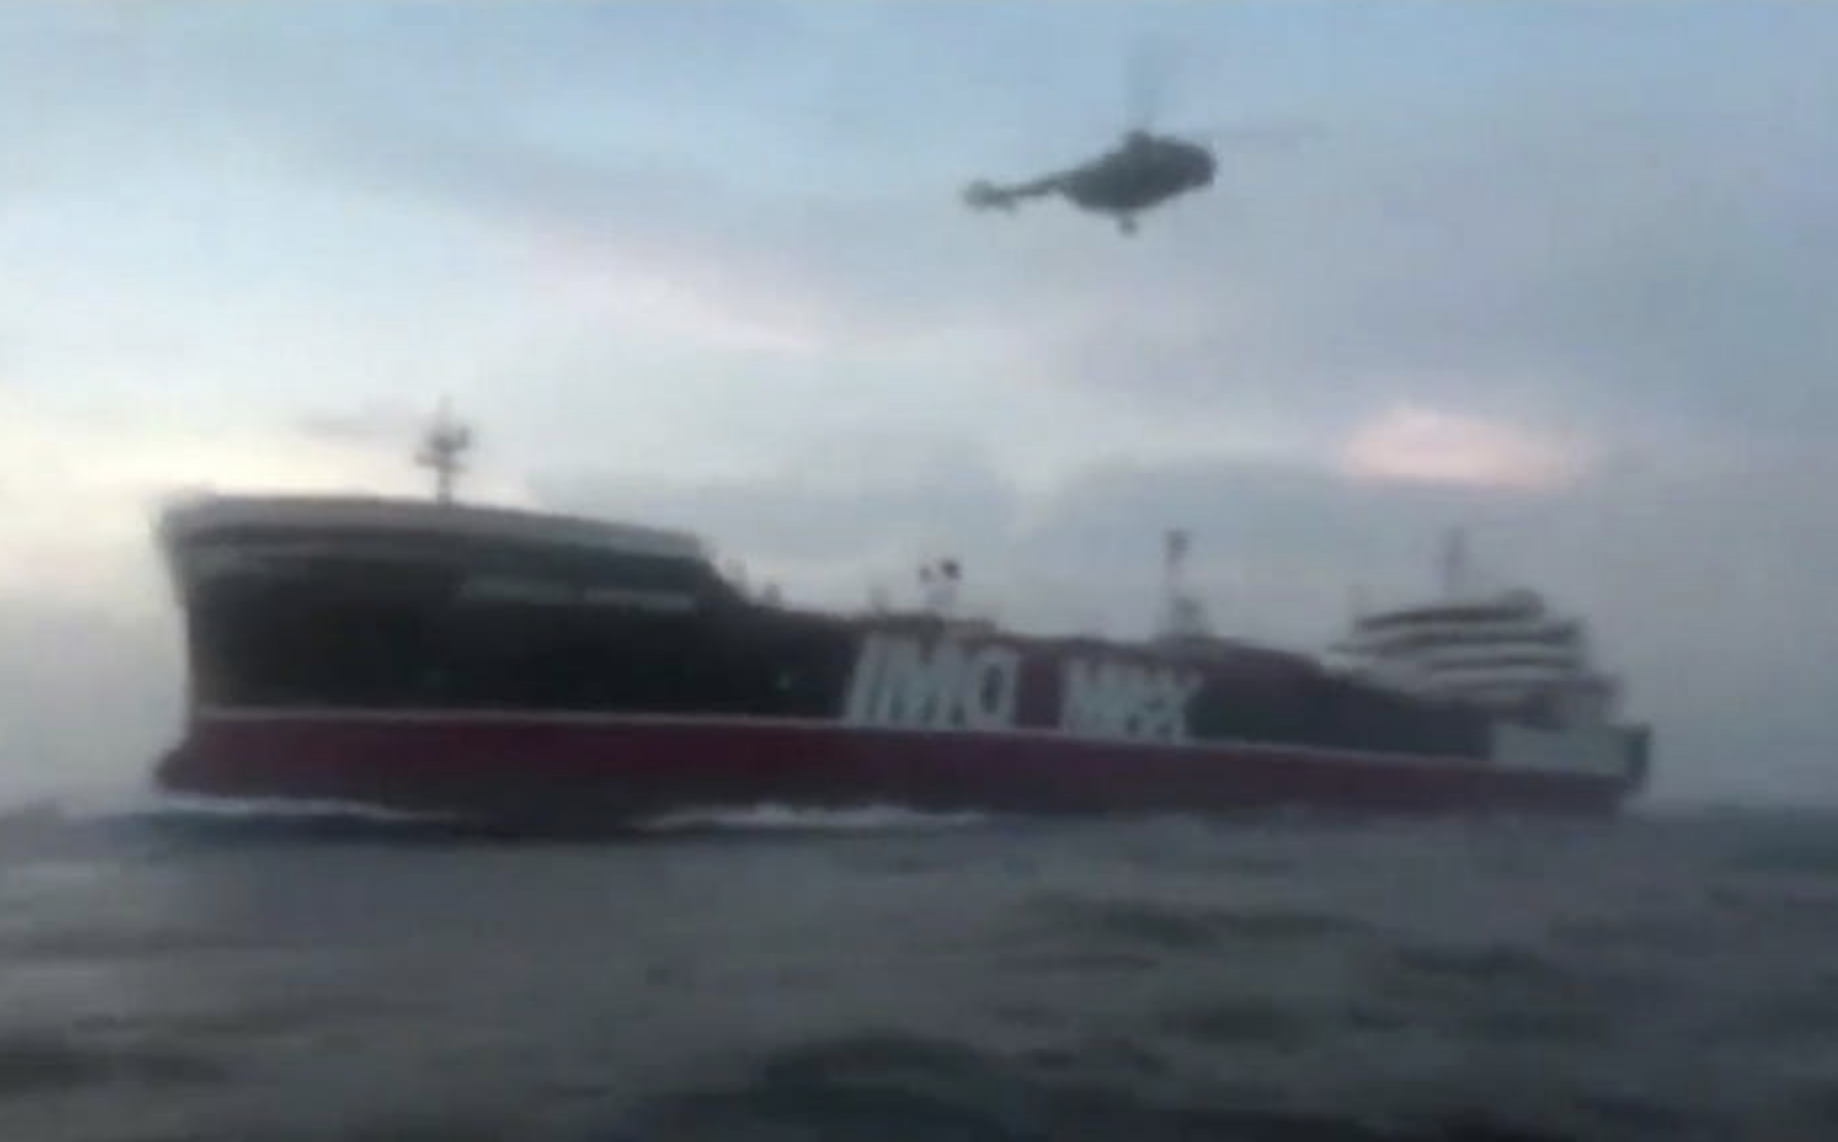 Footage released by Iran's Sepah News reportedly shows Revolutionary Guard Corps boarding the British-flagged tanker Stena Impero. EPA/Sepah news handout